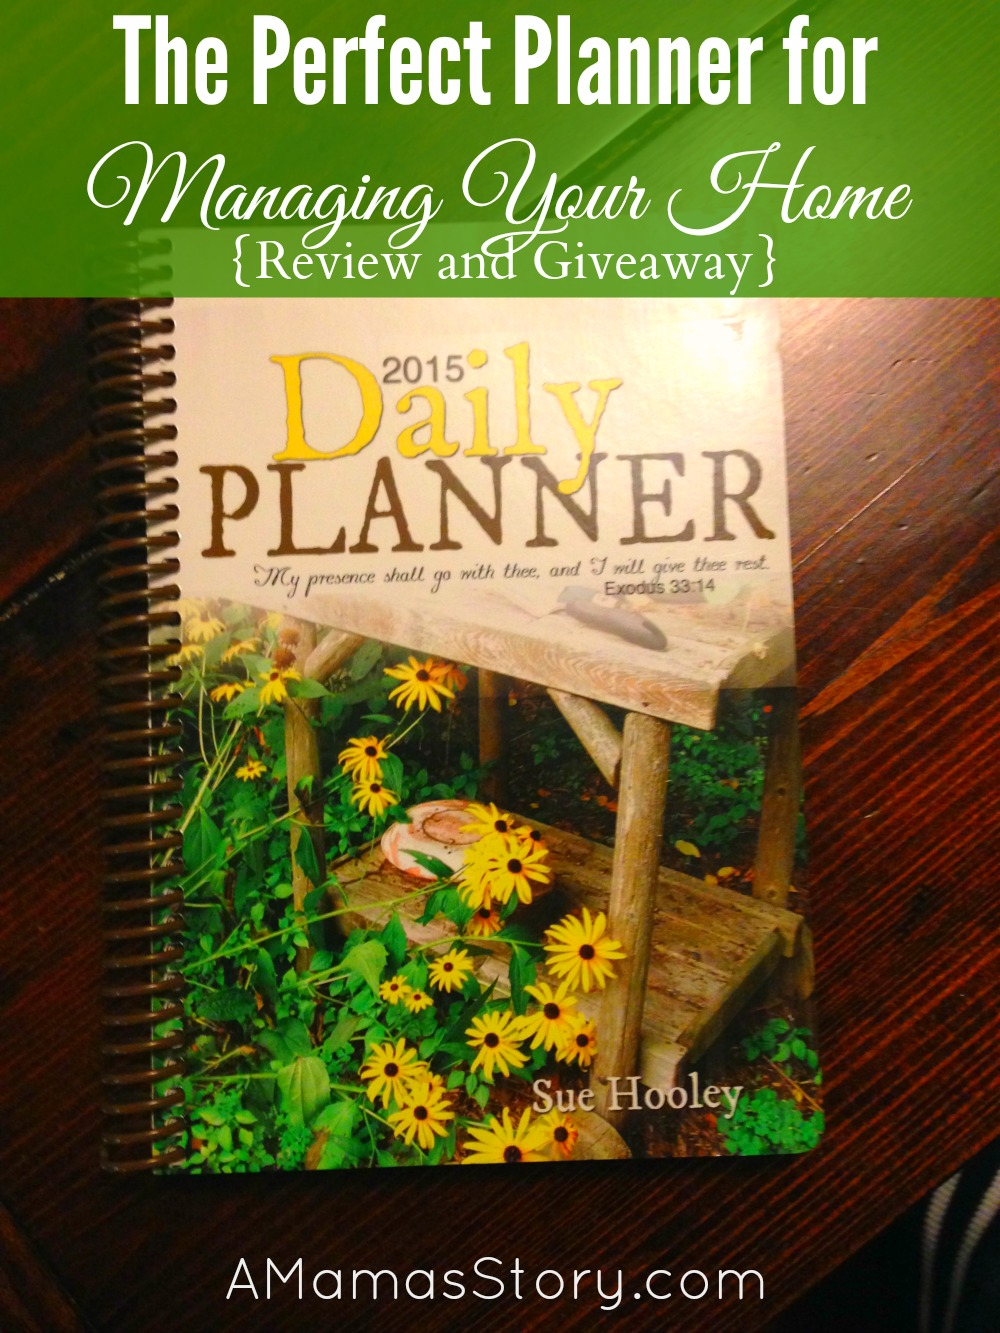 The Perfect Planner for Managing Your Home {Review and Giveaway}